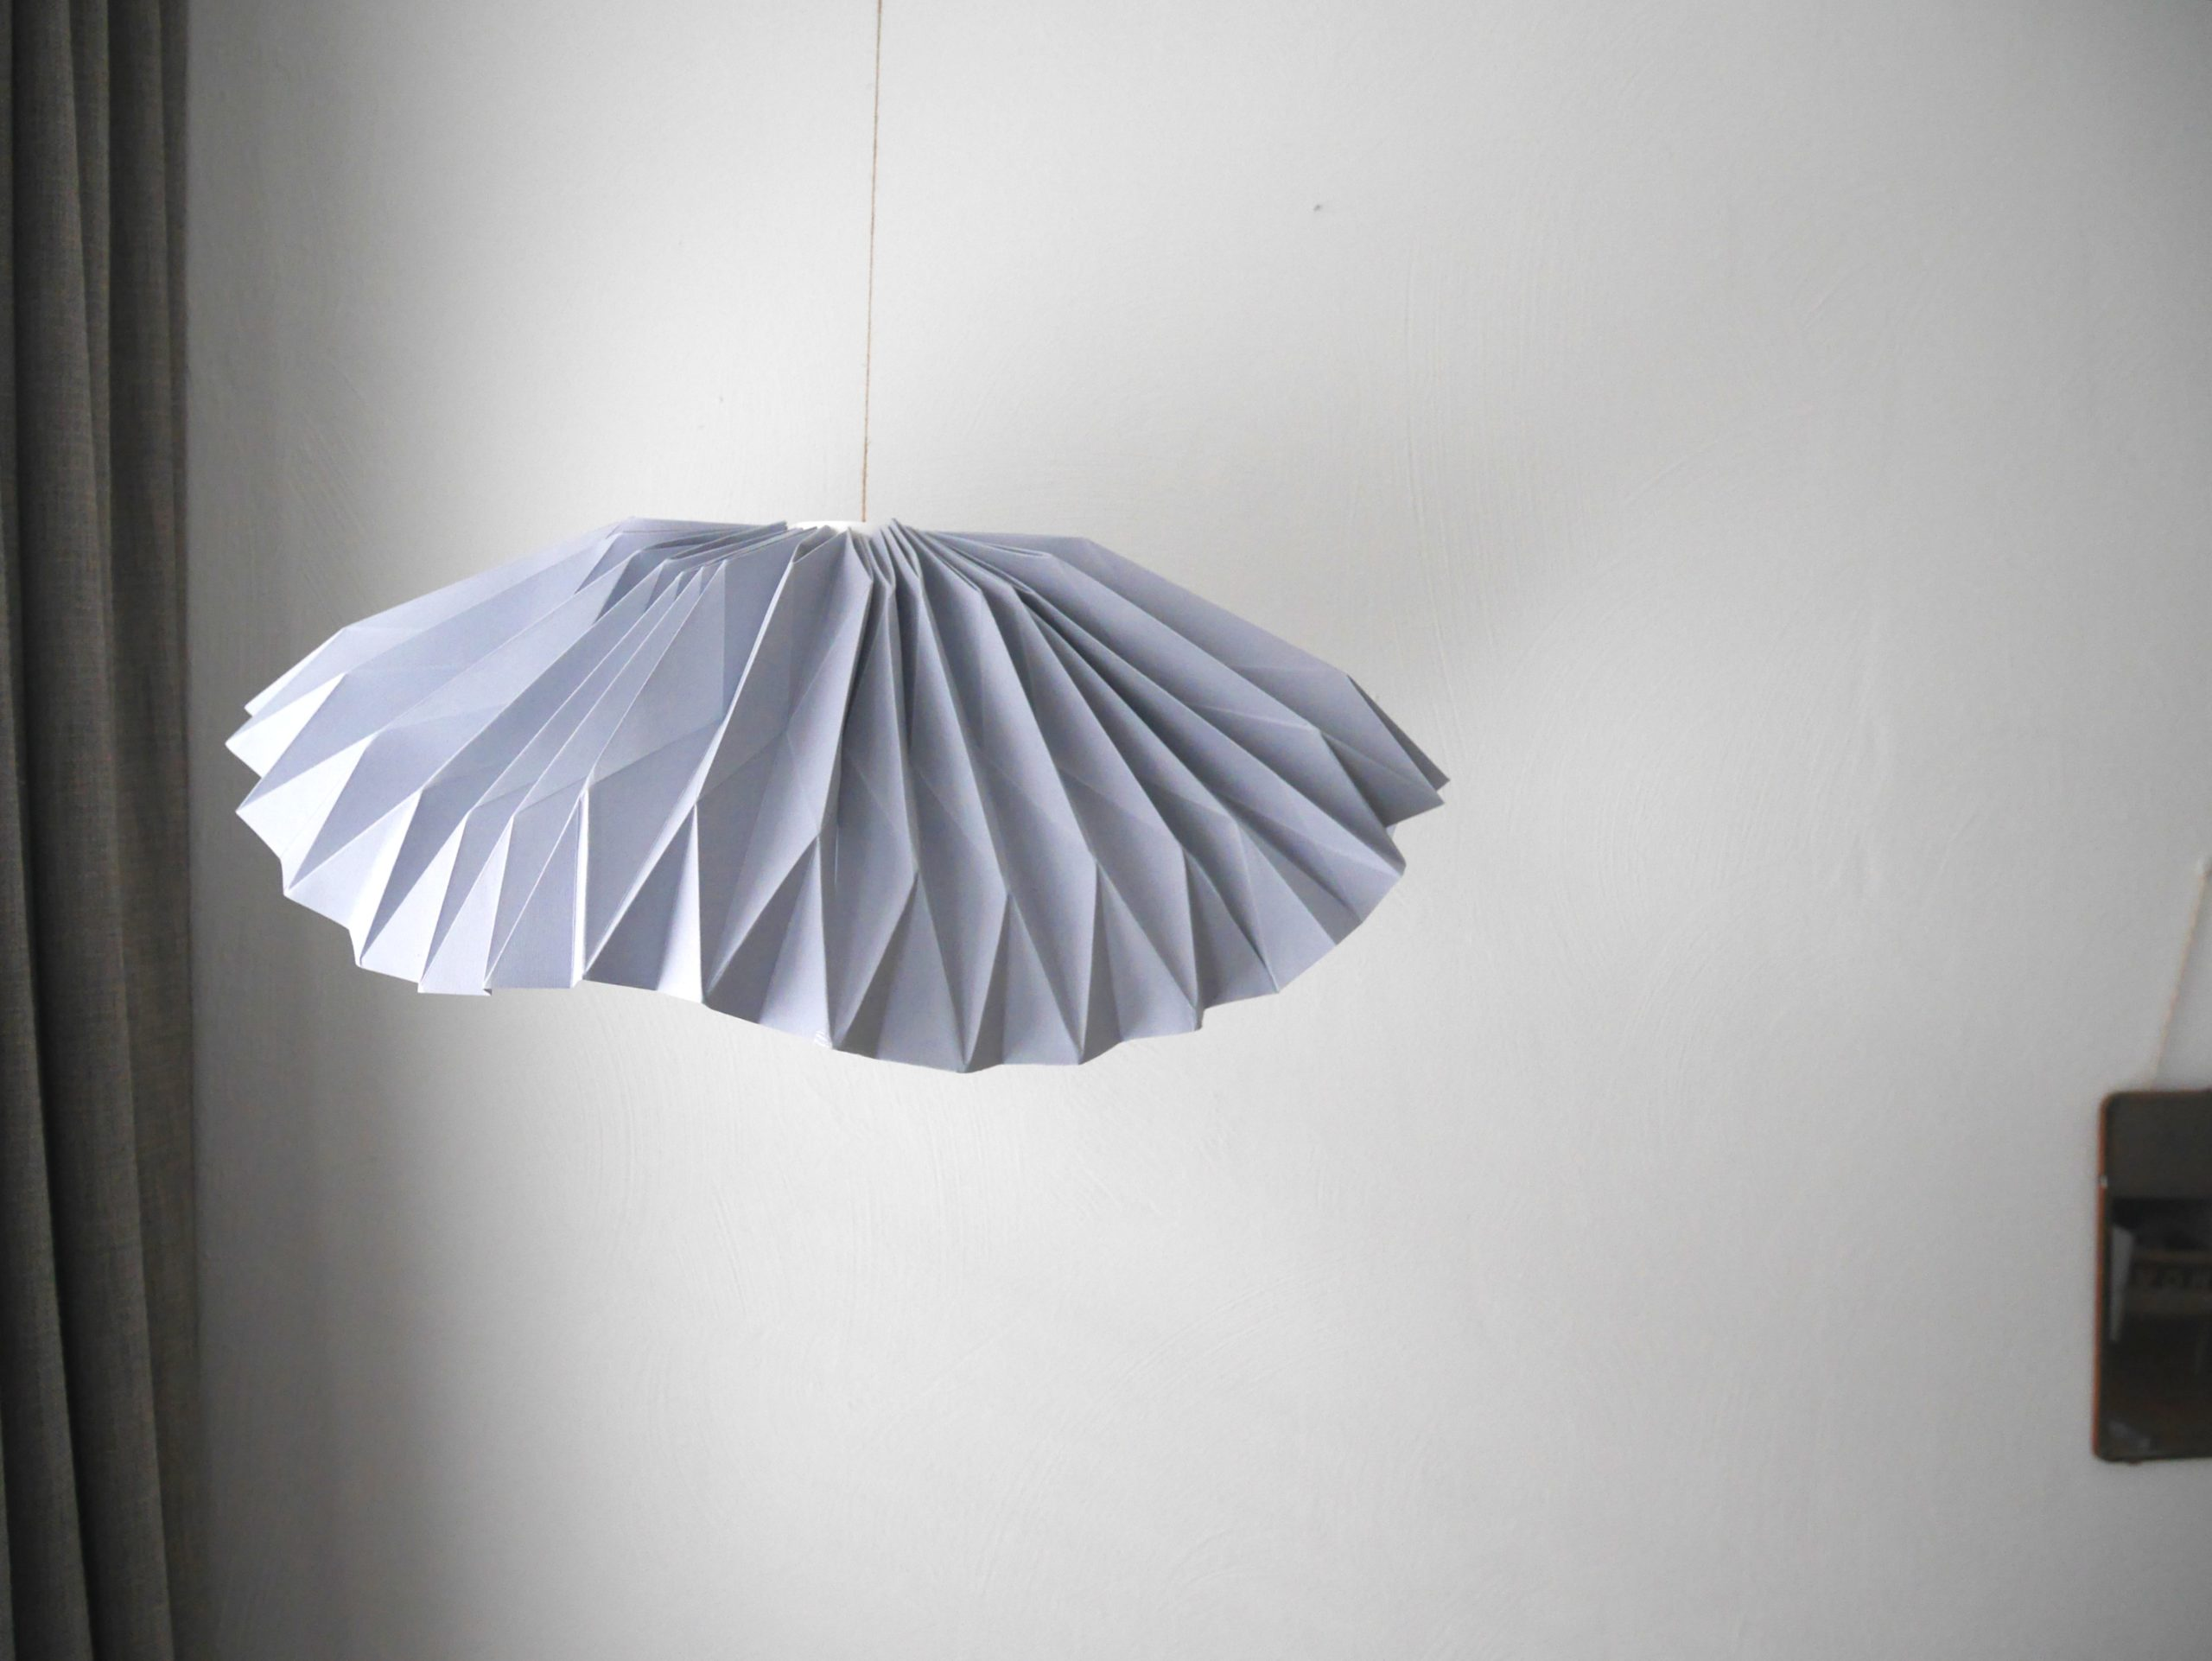 lamp, origami, vouwen, vouwkunst, diy, zelfmaken, workshop, online workshop, wonen&co